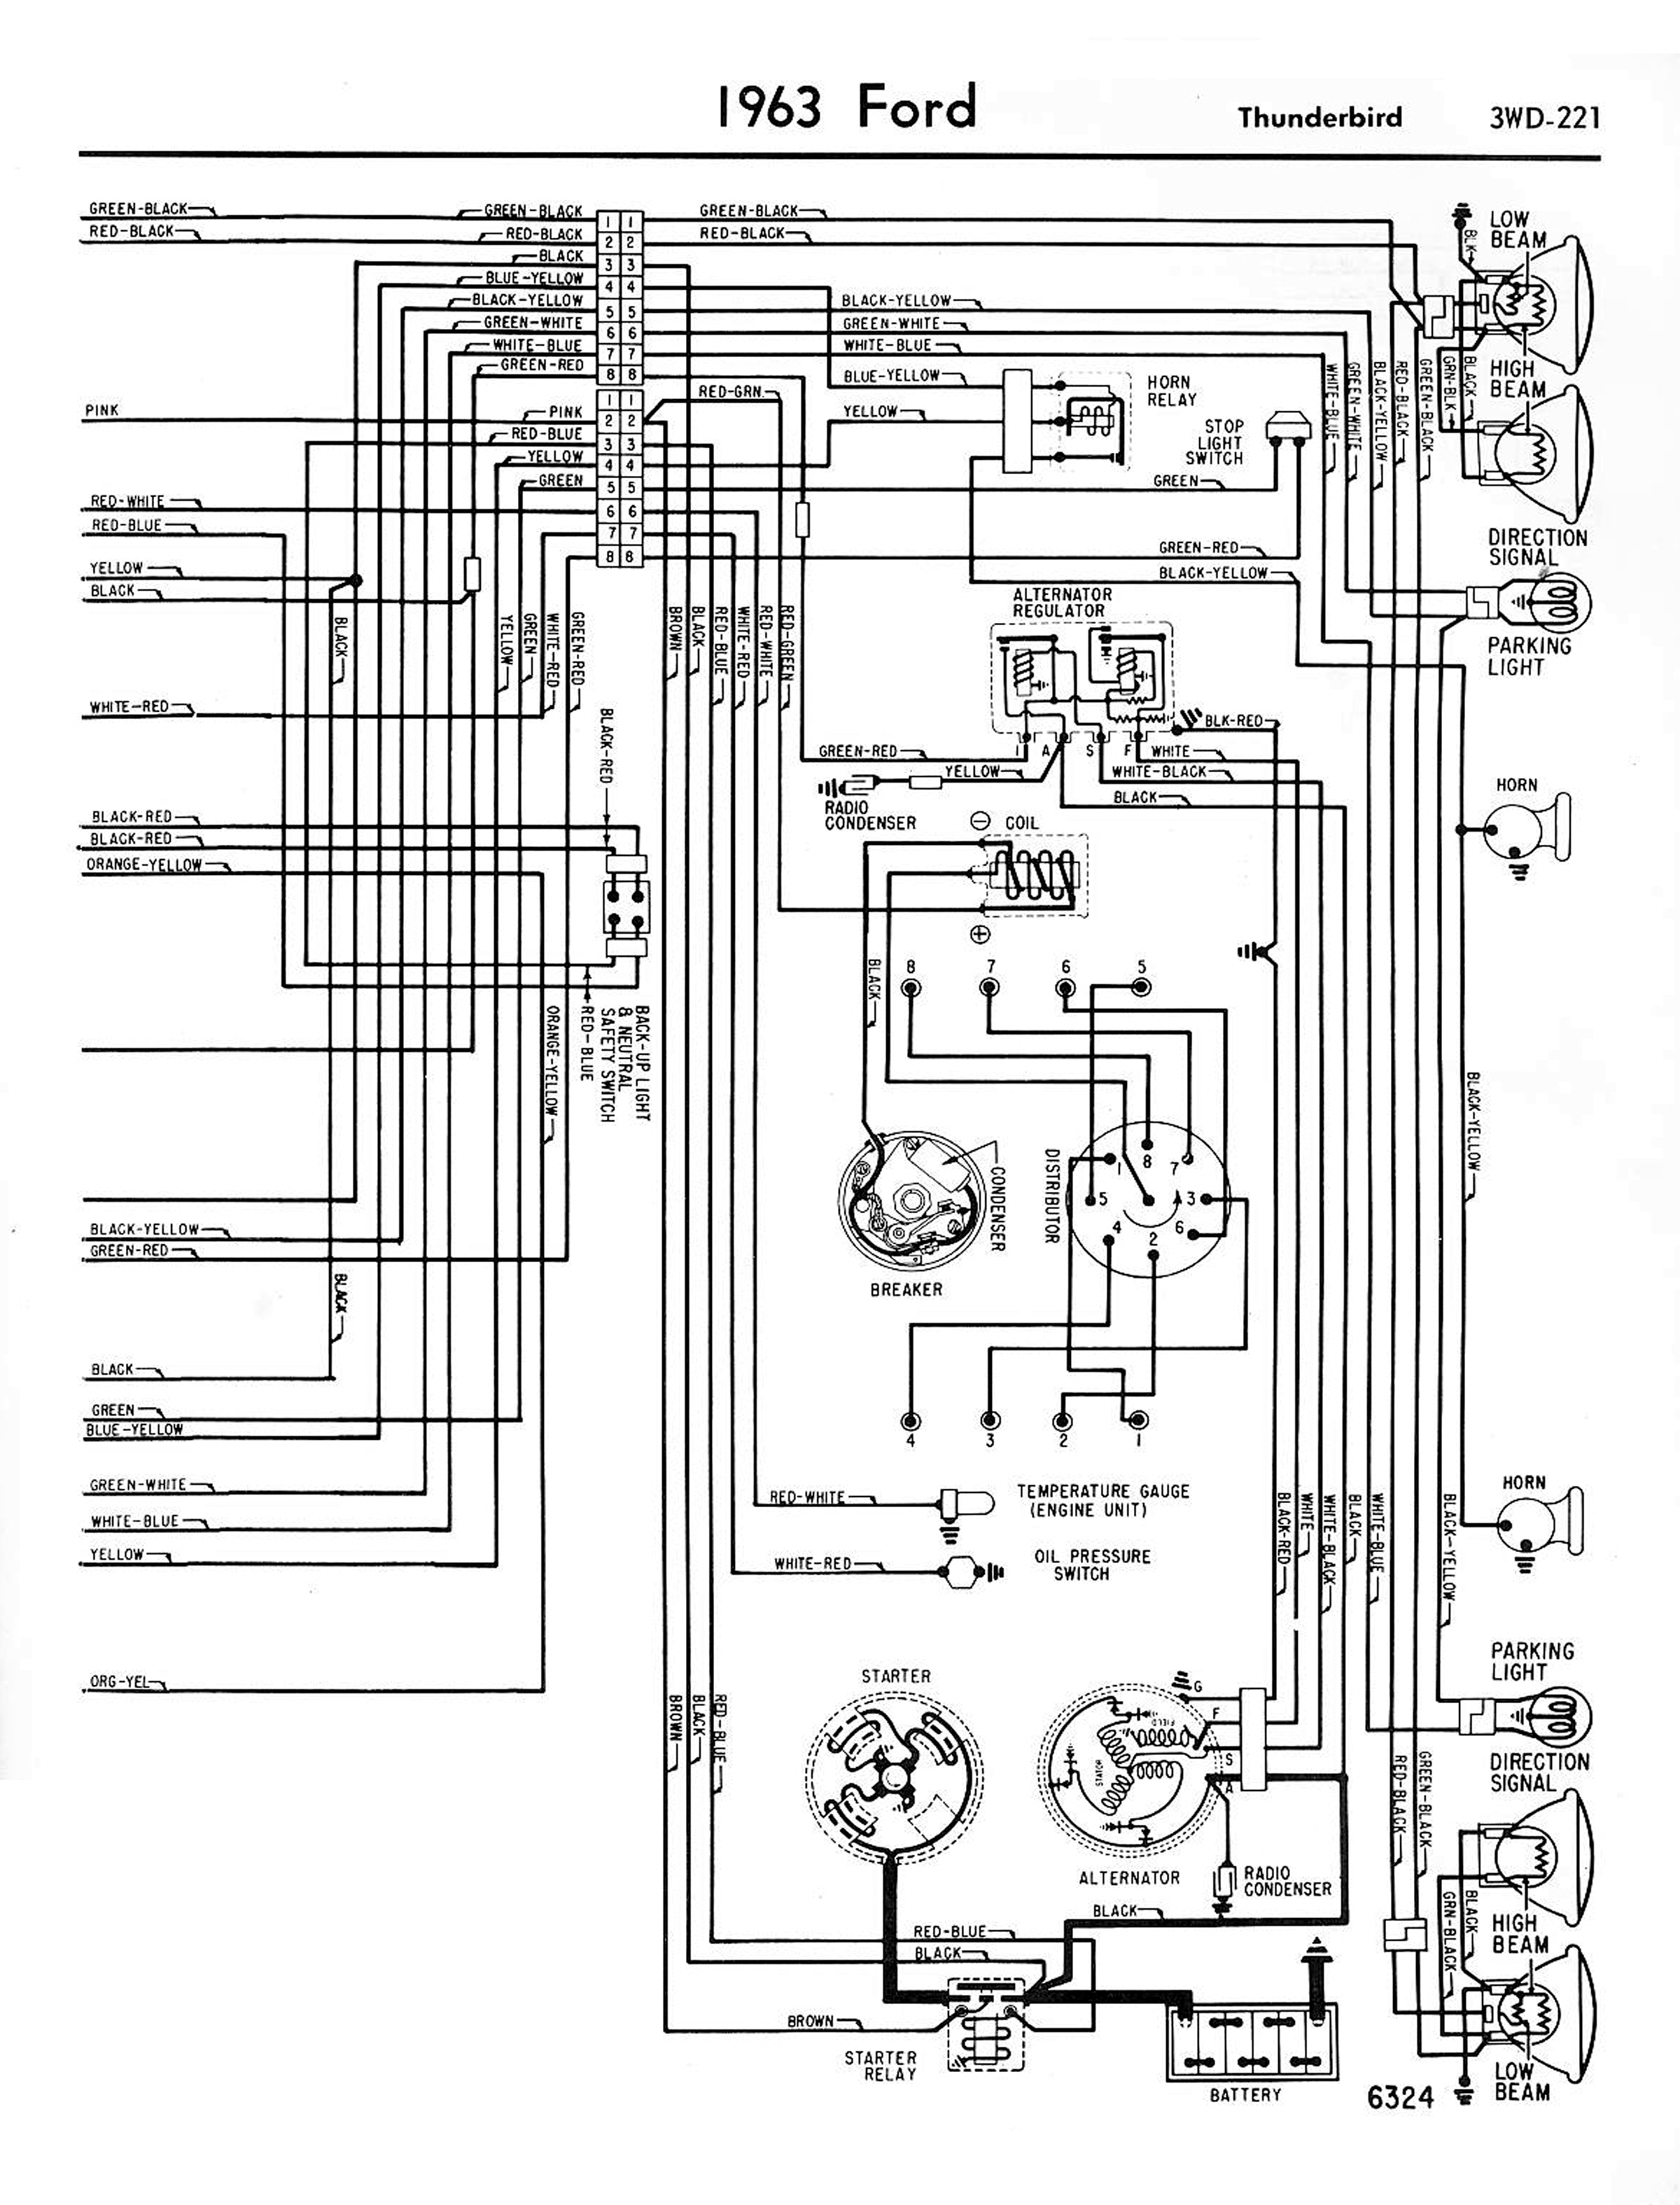 Ford Turn Signal Wiring Diagram Furthermore Car Wiring Diagram ...  Ford Ranchero Wiring Diagram on amc amx wiring diagrams, chrysler lebaron wiring diagrams, volvo 240 wiring diagrams, dodge dakota wiring diagrams, jeep wrangler wiring diagrams, imperial wiring diagrams, ford ranchero seats, peterbilt wiring diagrams, ford ranchero engine, oldsmobile alero wiring diagrams, mercury sable wiring diagrams, ford ranchero parts, jeep cj wiring diagrams, dodge ramcharger wiring diagrams, jeep patriot wiring diagrams, pontiac grand prix wiring diagrams, oldsmobile 98 wiring diagrams, plymouth barracuda wiring diagrams, chrysler concorde wiring diagrams, saab 9-3 wiring diagrams,